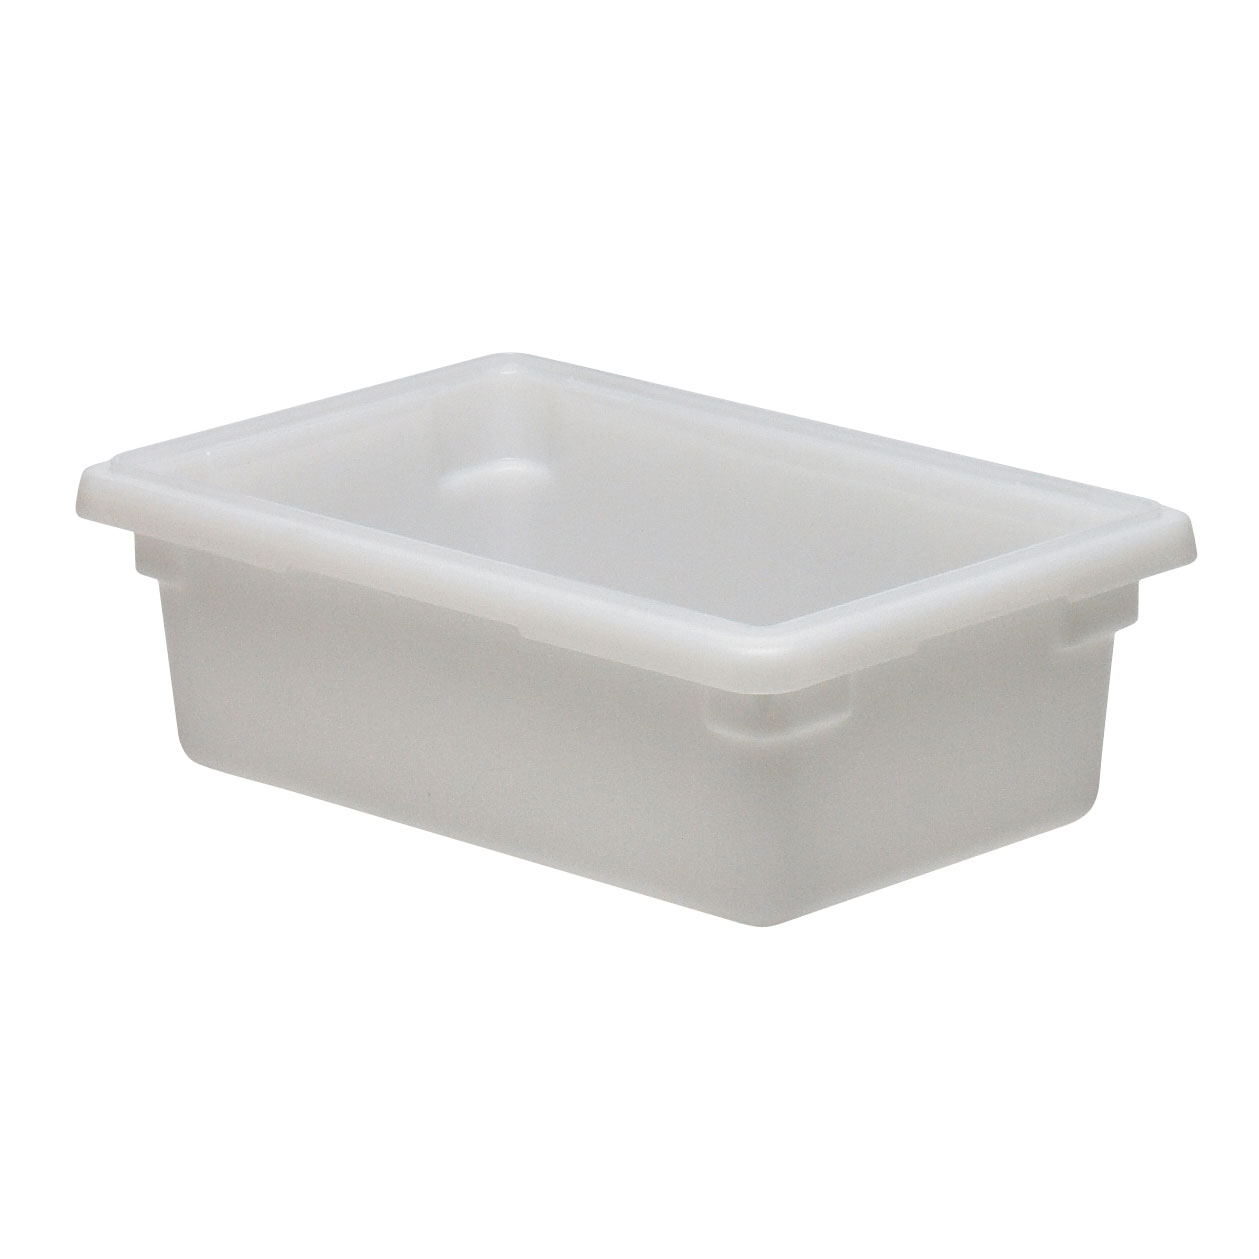 Cambro 12186P148 food storage container, box